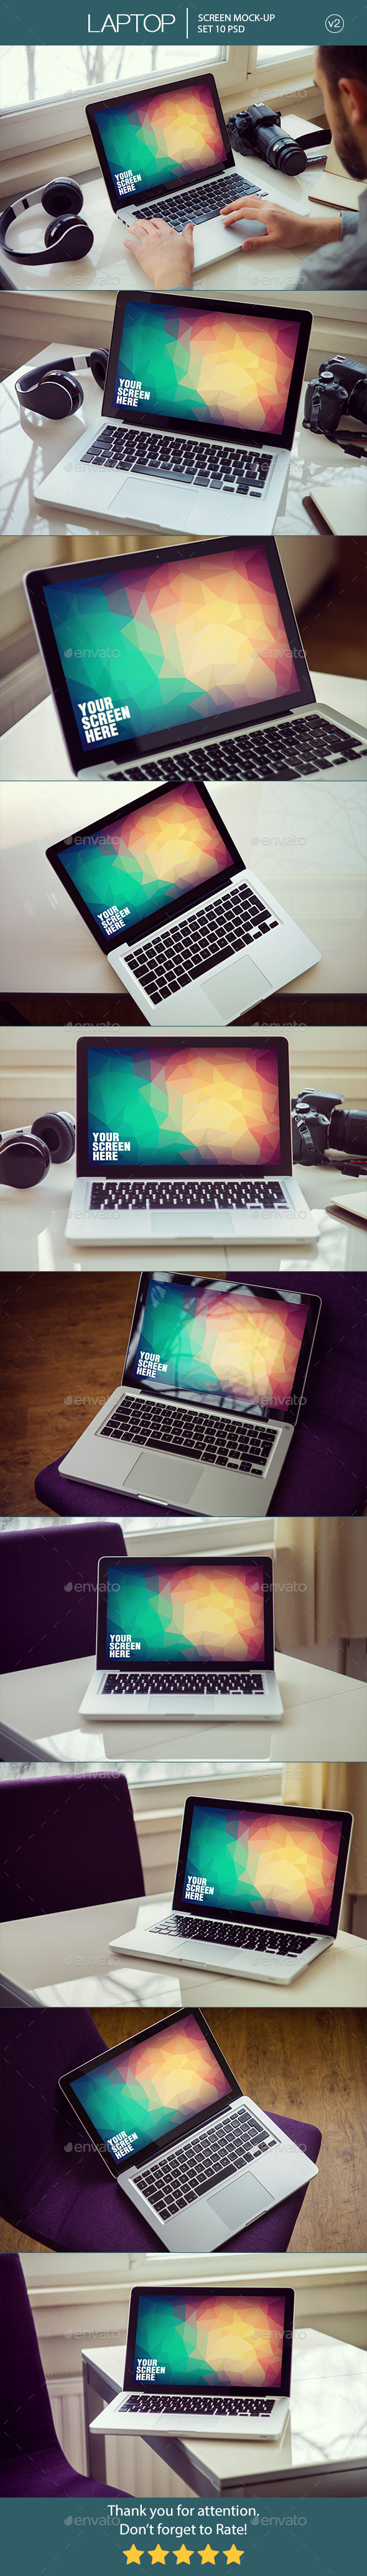 Laptop Screen Mockup v2 - Laptop Displays